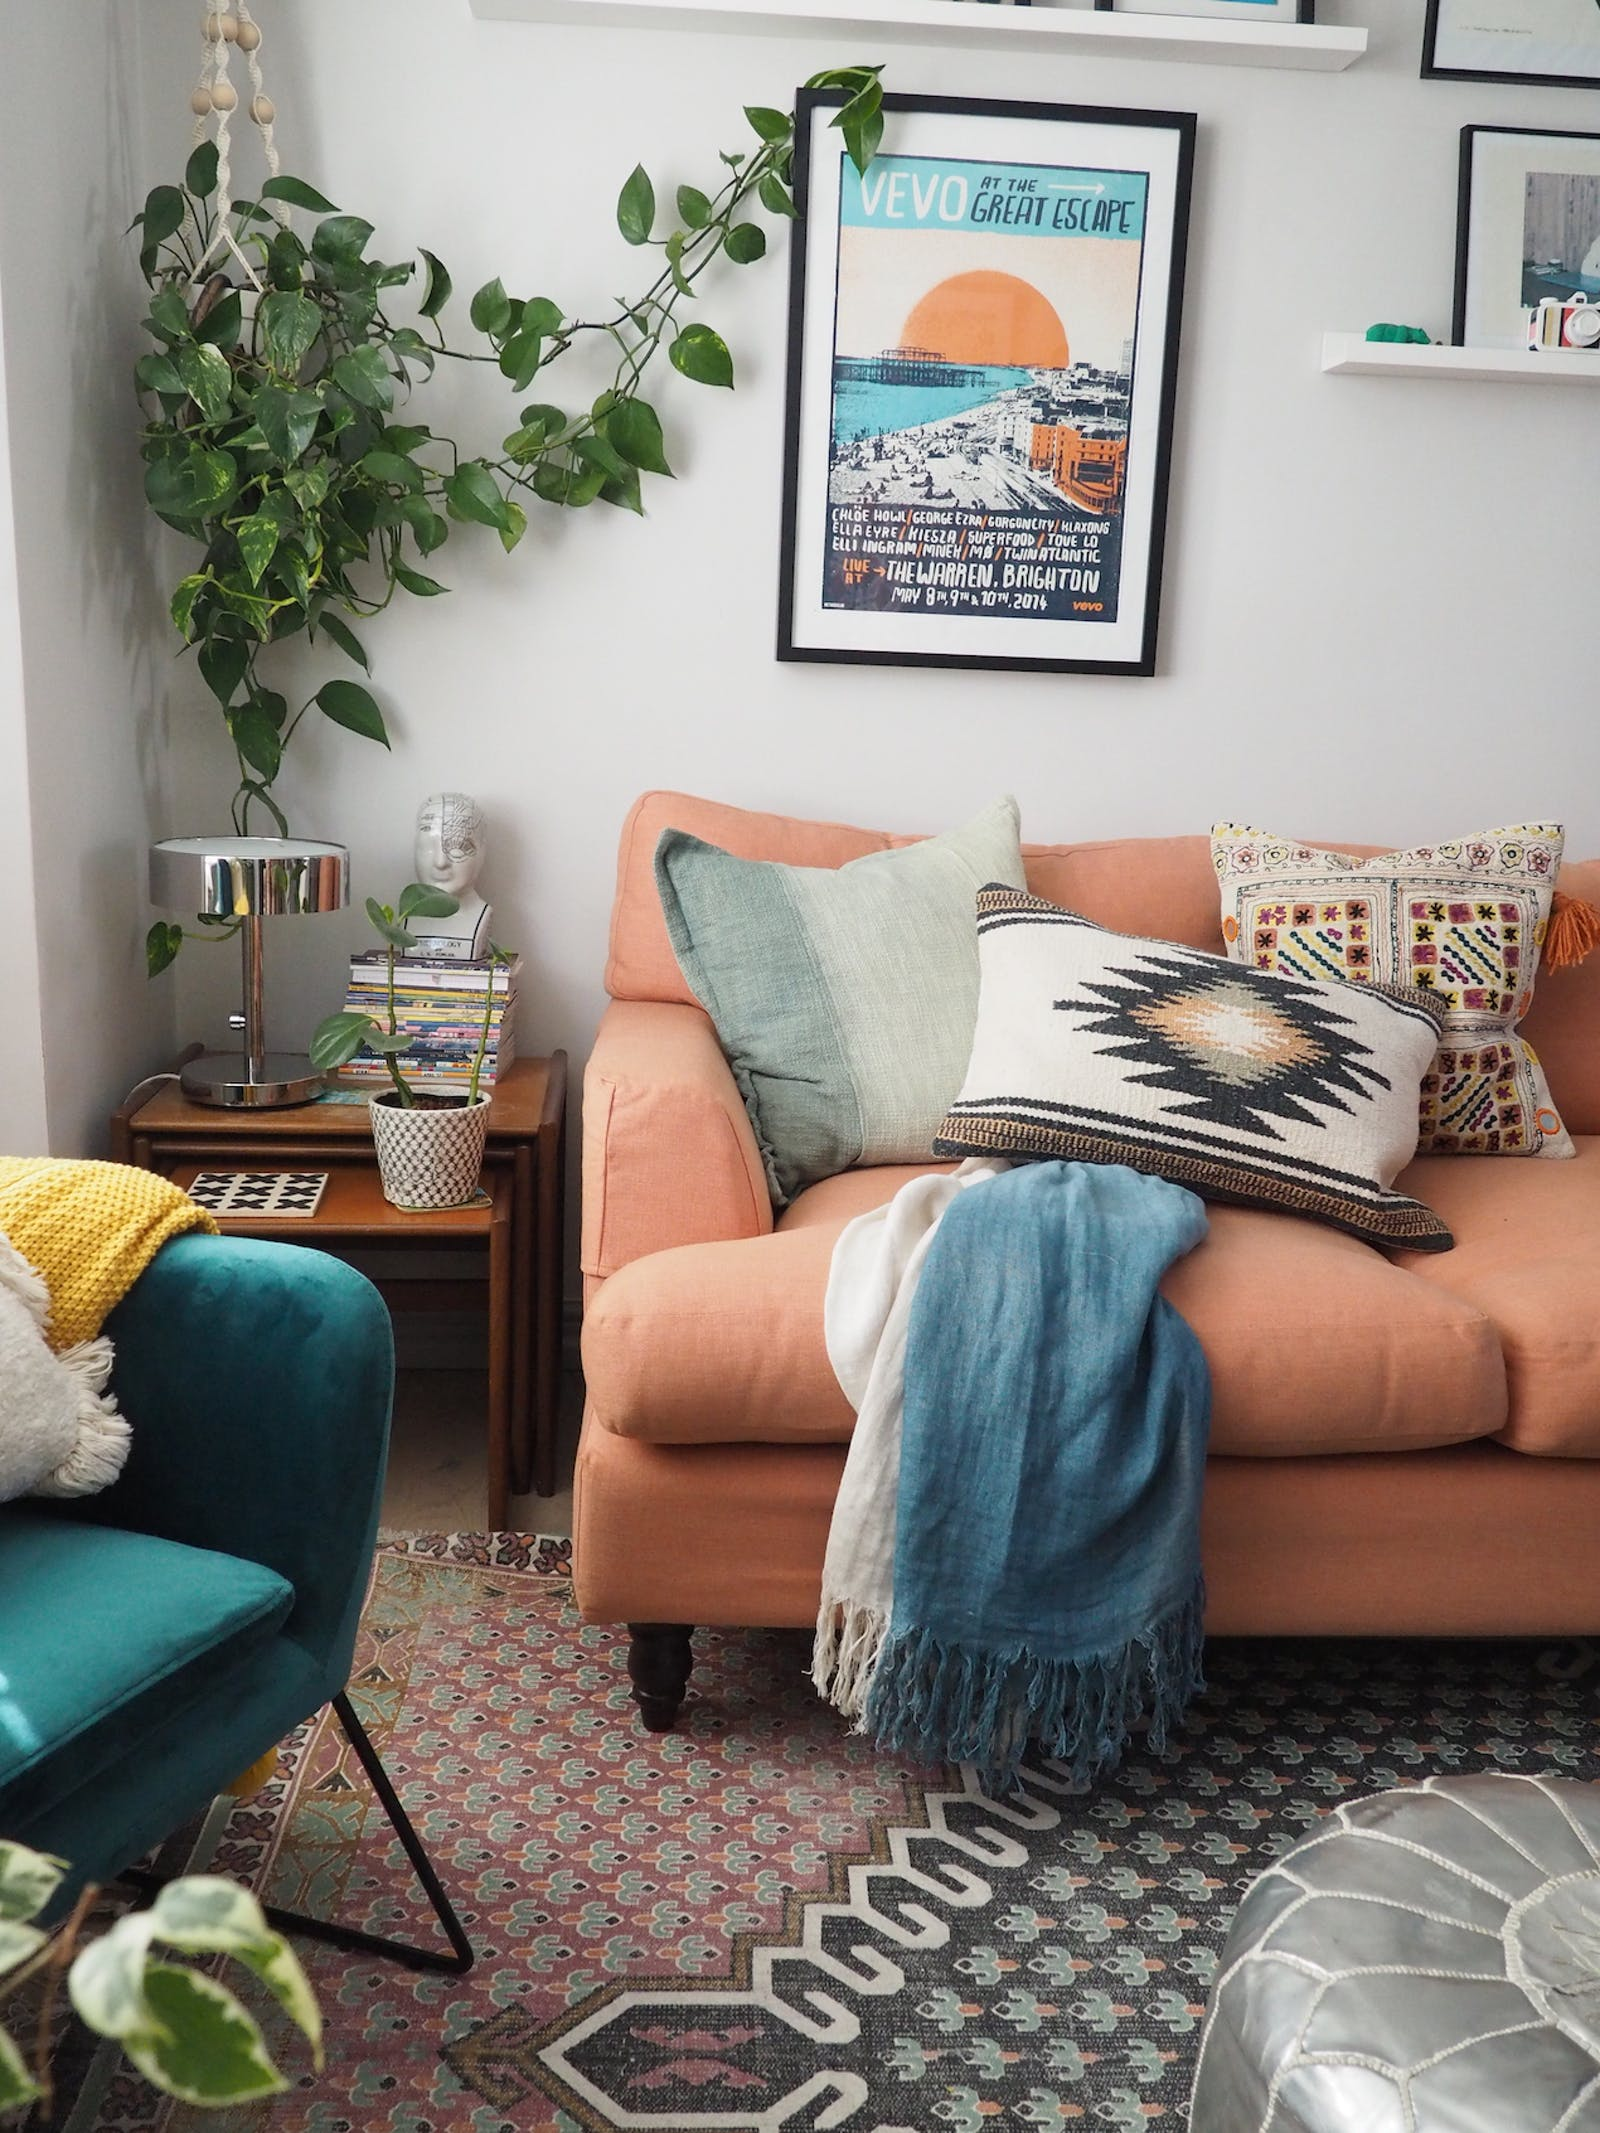 Living room with peach coloured sofa and eclectic cushions